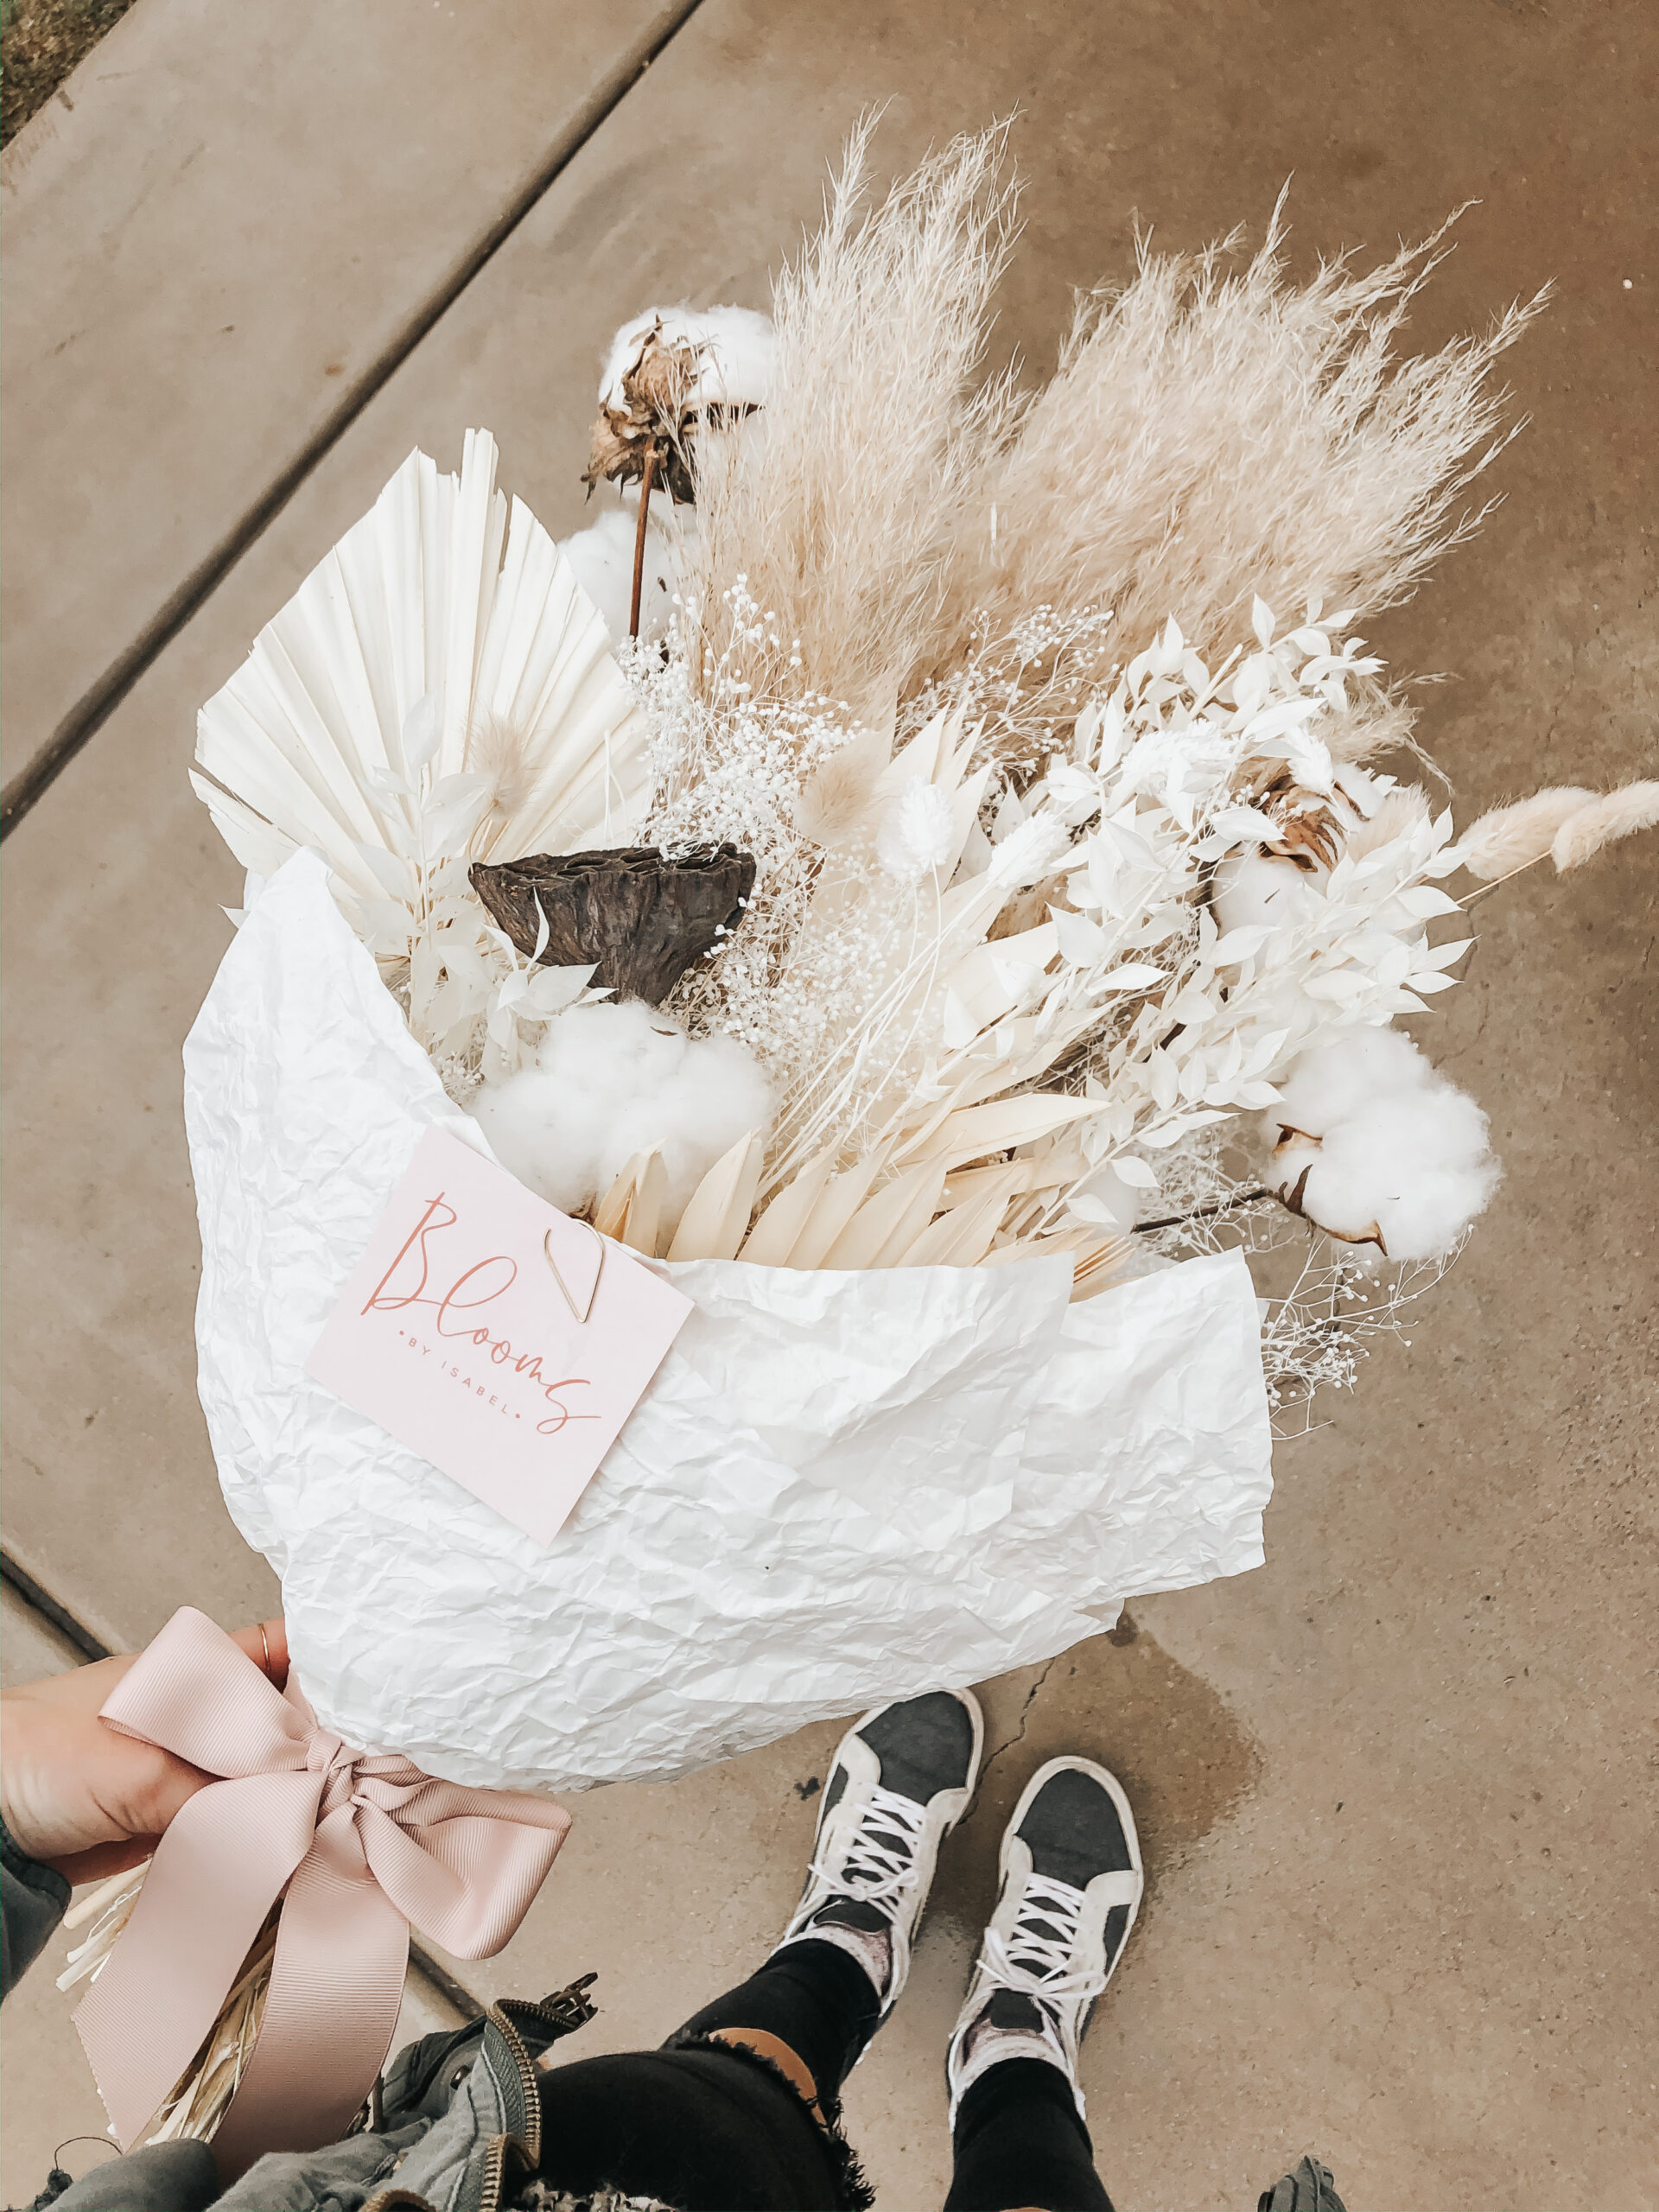 Where to find flowers for dried flower arrangements and the best flowers to choose    Darling Darleen Top Lifestyle Connecticut Blogger